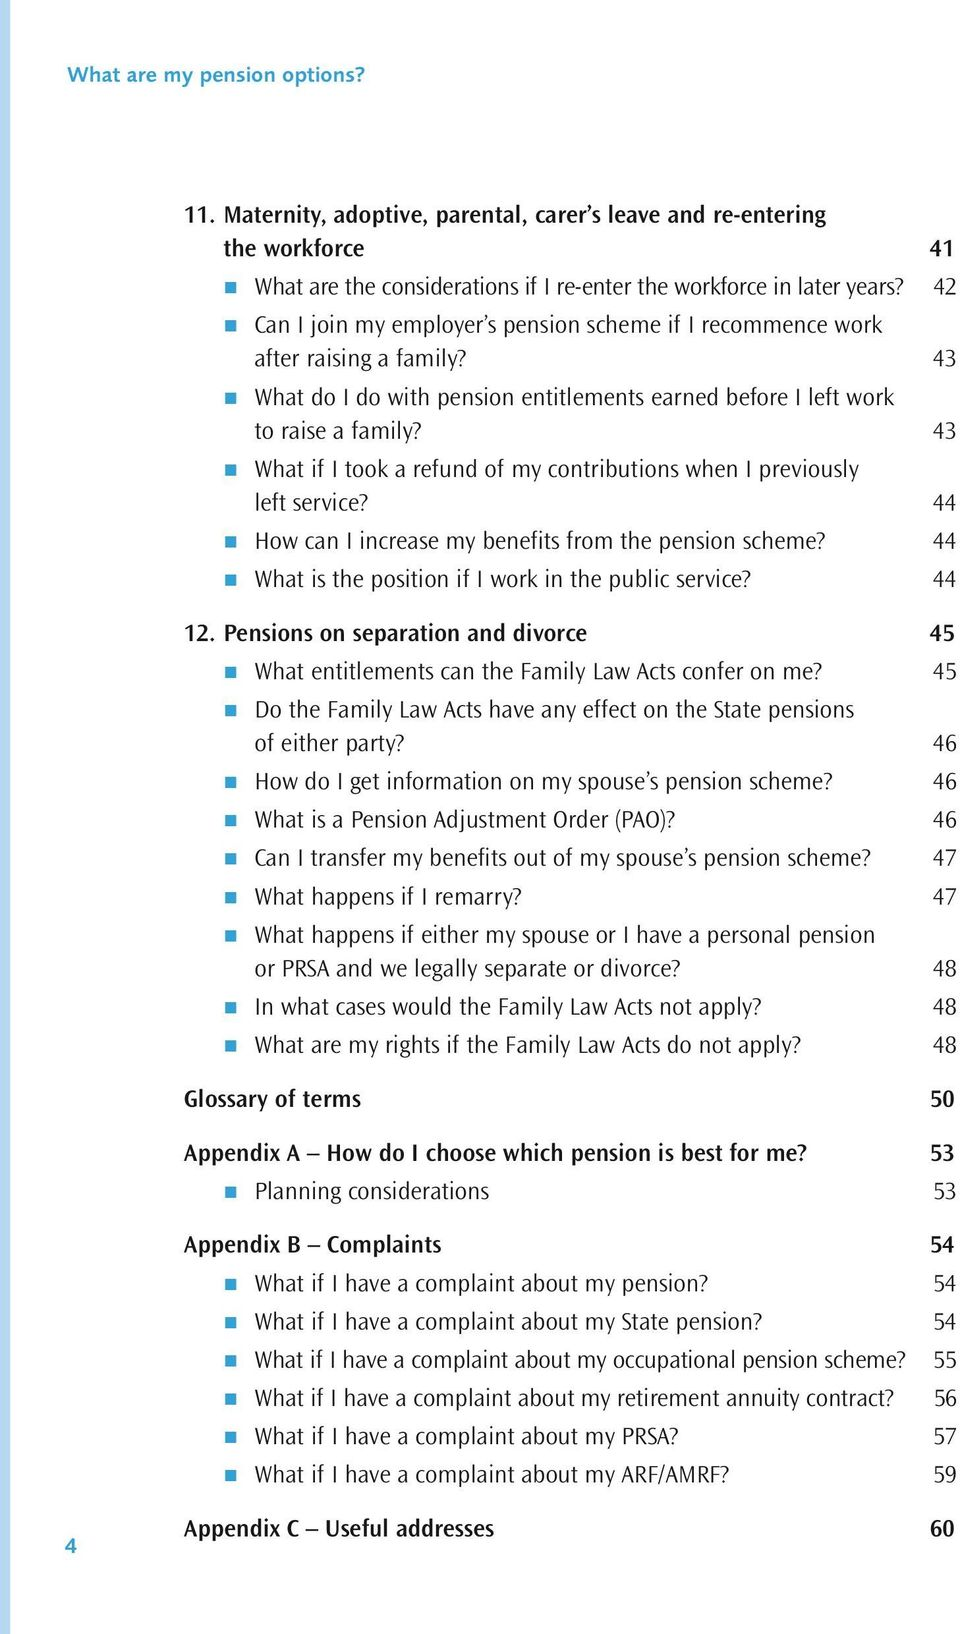 43 What if I took a refund of my contributions when I previously left service? 44 How can I increase my benefits from the pension scheme? 44 What is the position if I work in the public service?